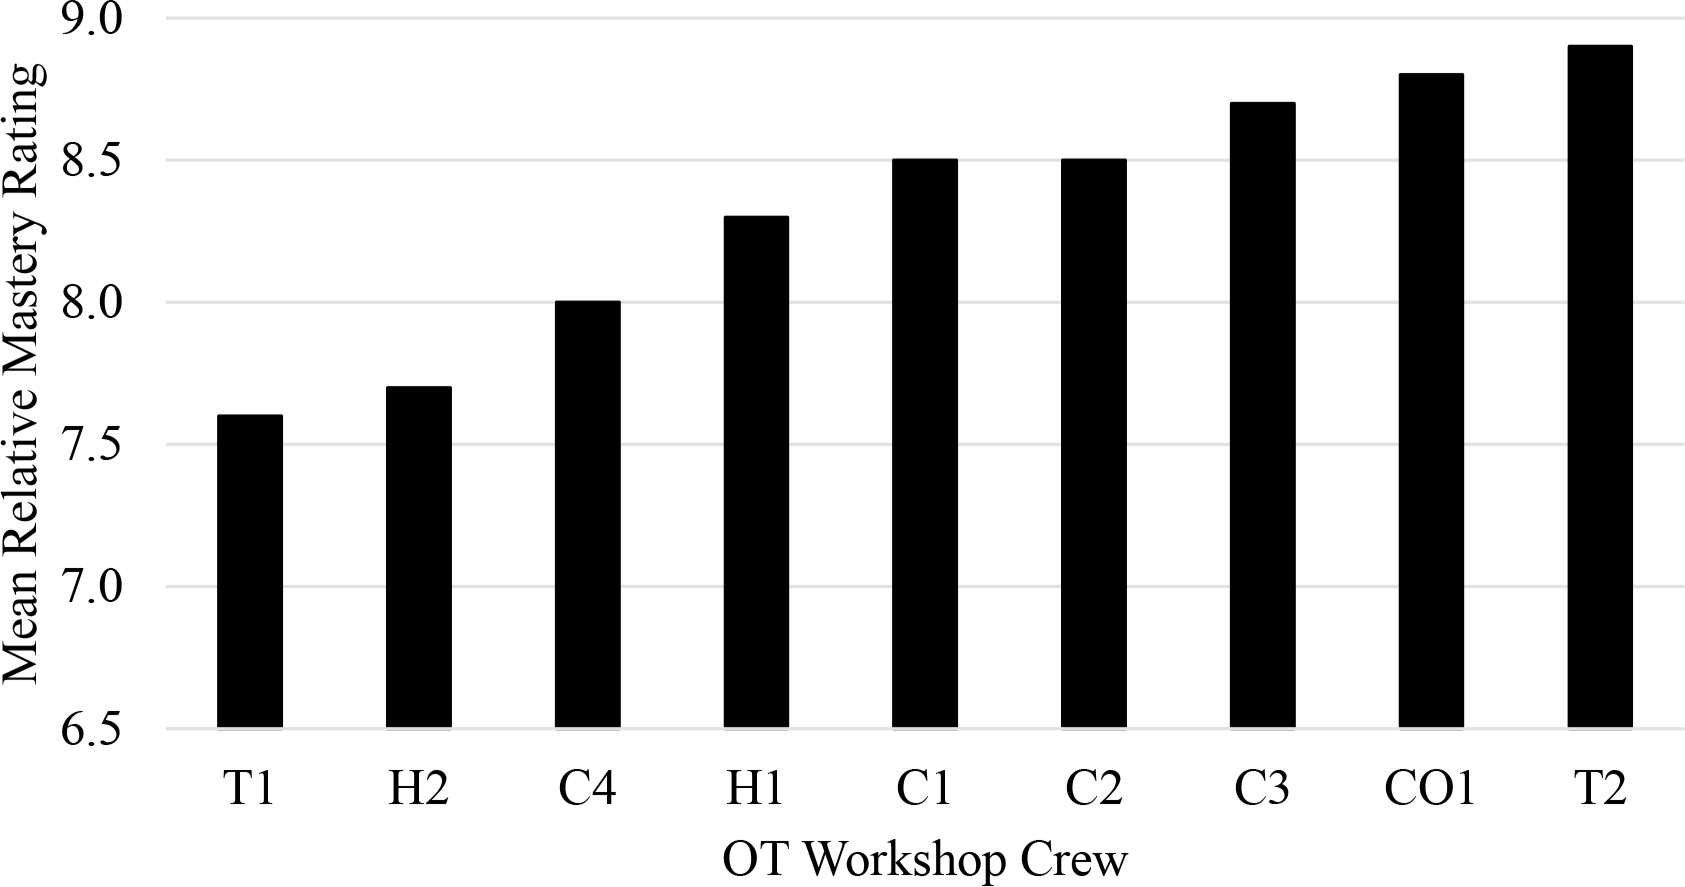 Mean relative mastery ratings by individual OT Workshop crew. T = technology; H = horticulture; C = craft; CO = cooking.